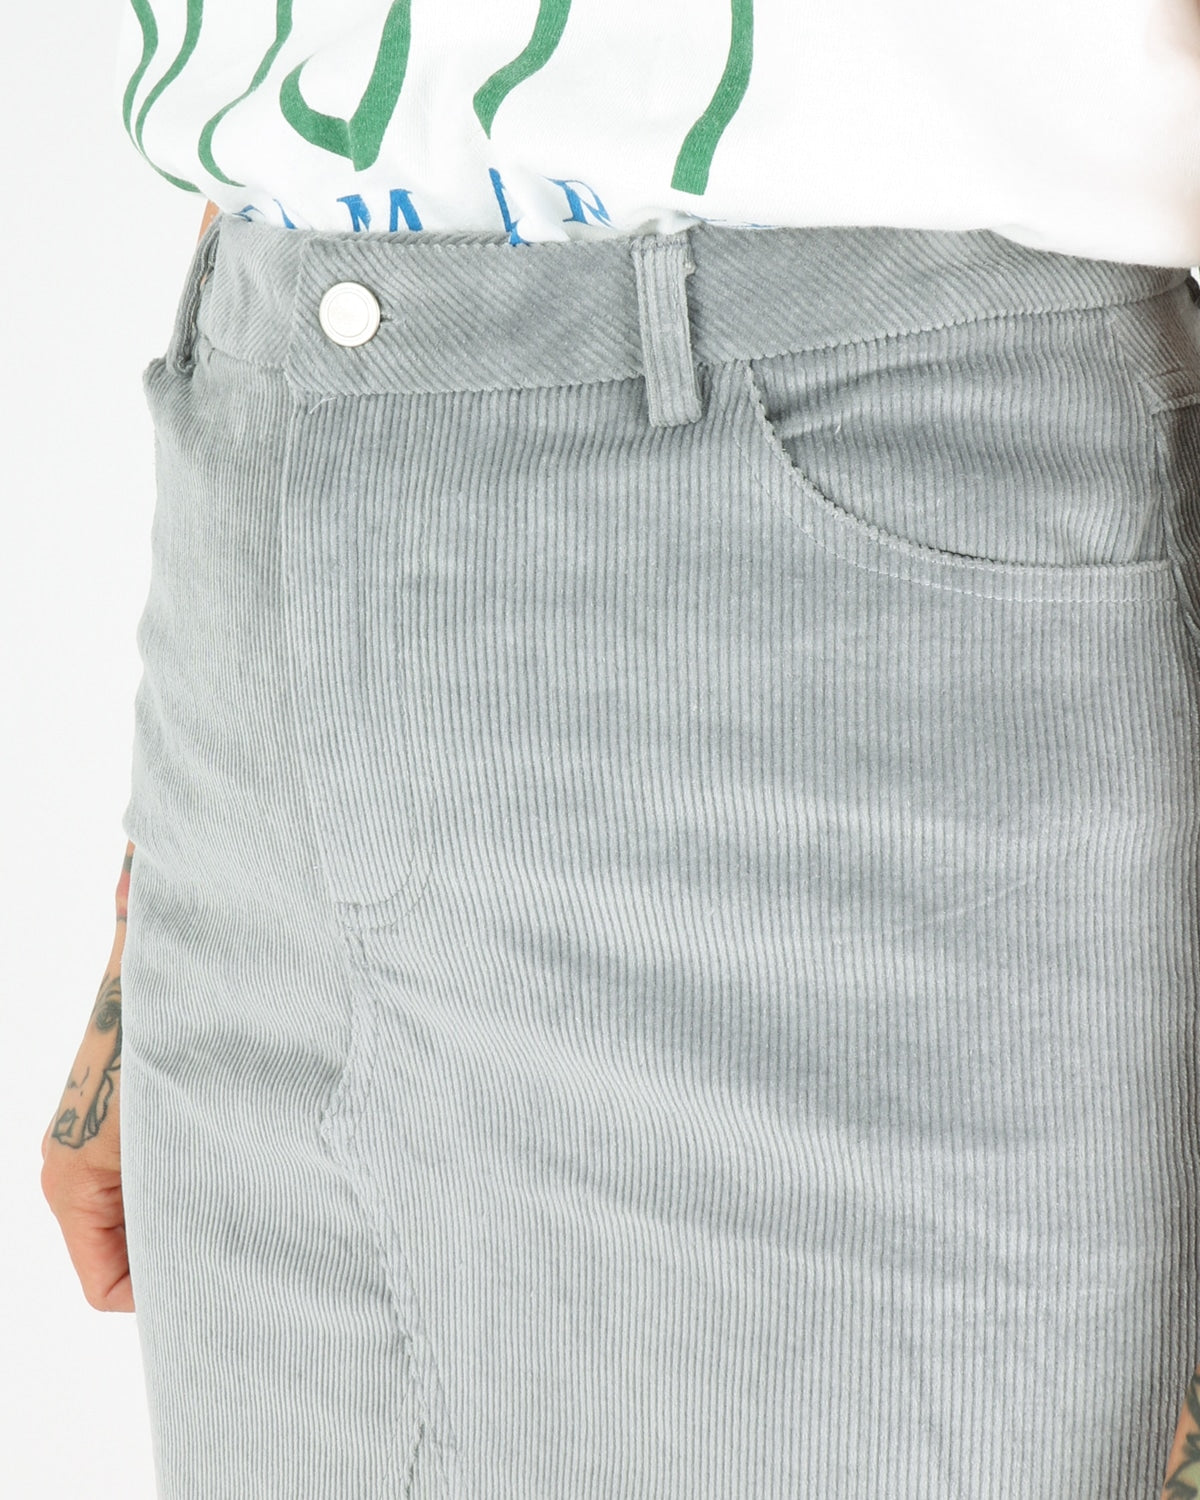 pop cph_curdory skirt_grey_3_4